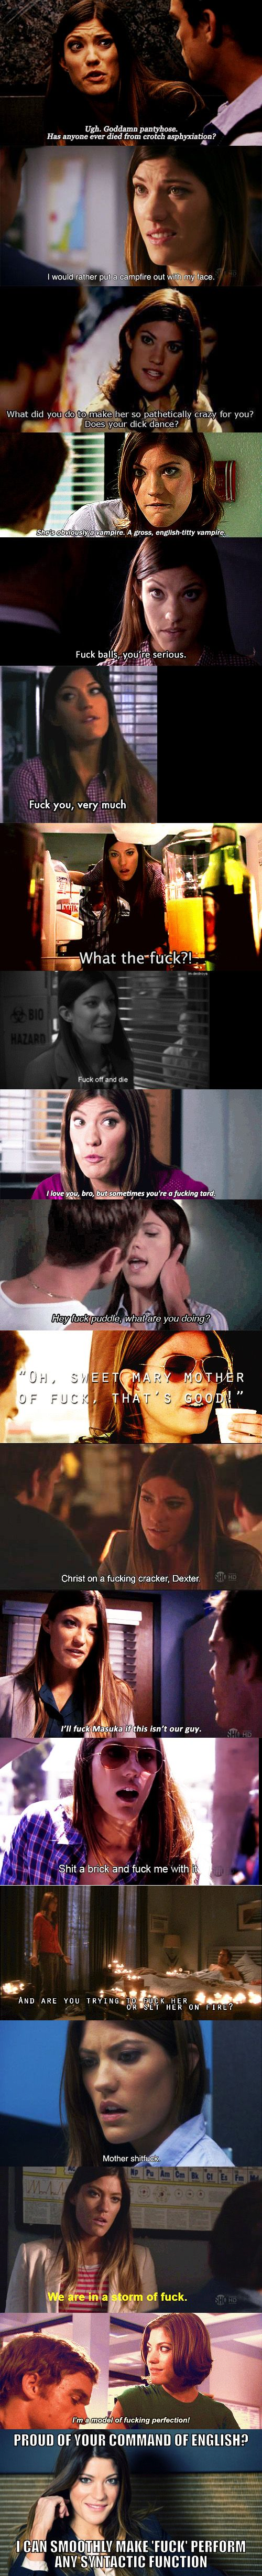 Deb And Her Ridiculous Foul Mouth Was Totally The Highlight Of The Show For Me Debra Morgan Funny Pictures Laughter